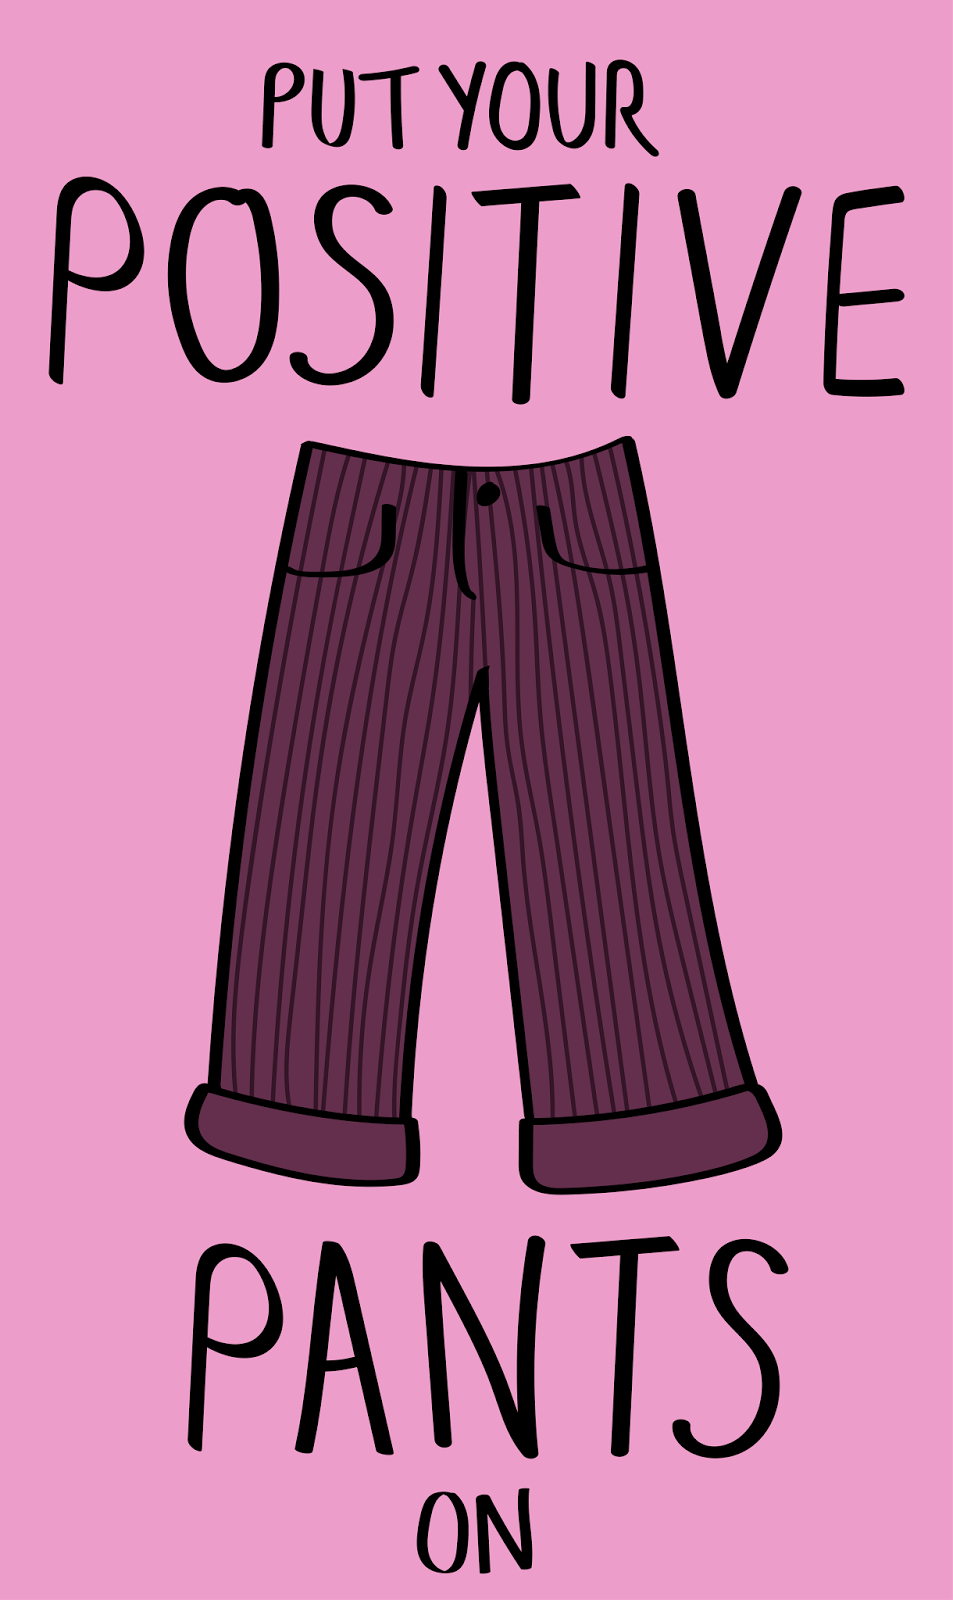 positive pants illustration